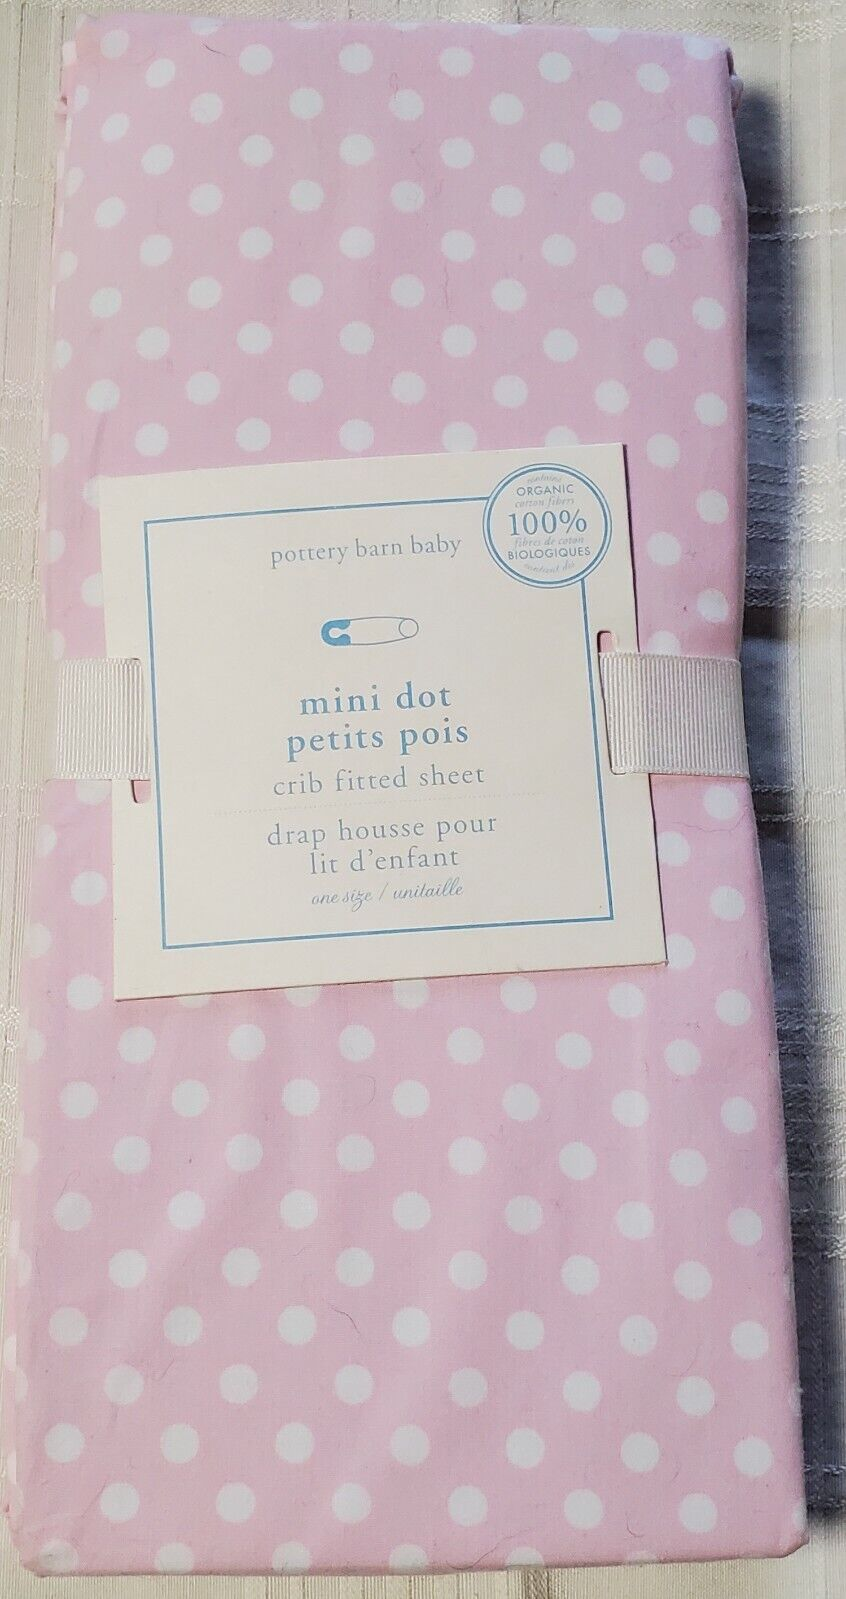 Pottery Barn Kids Pink And White Polka Dot Crib Fitted Sheet. 100% Organic...